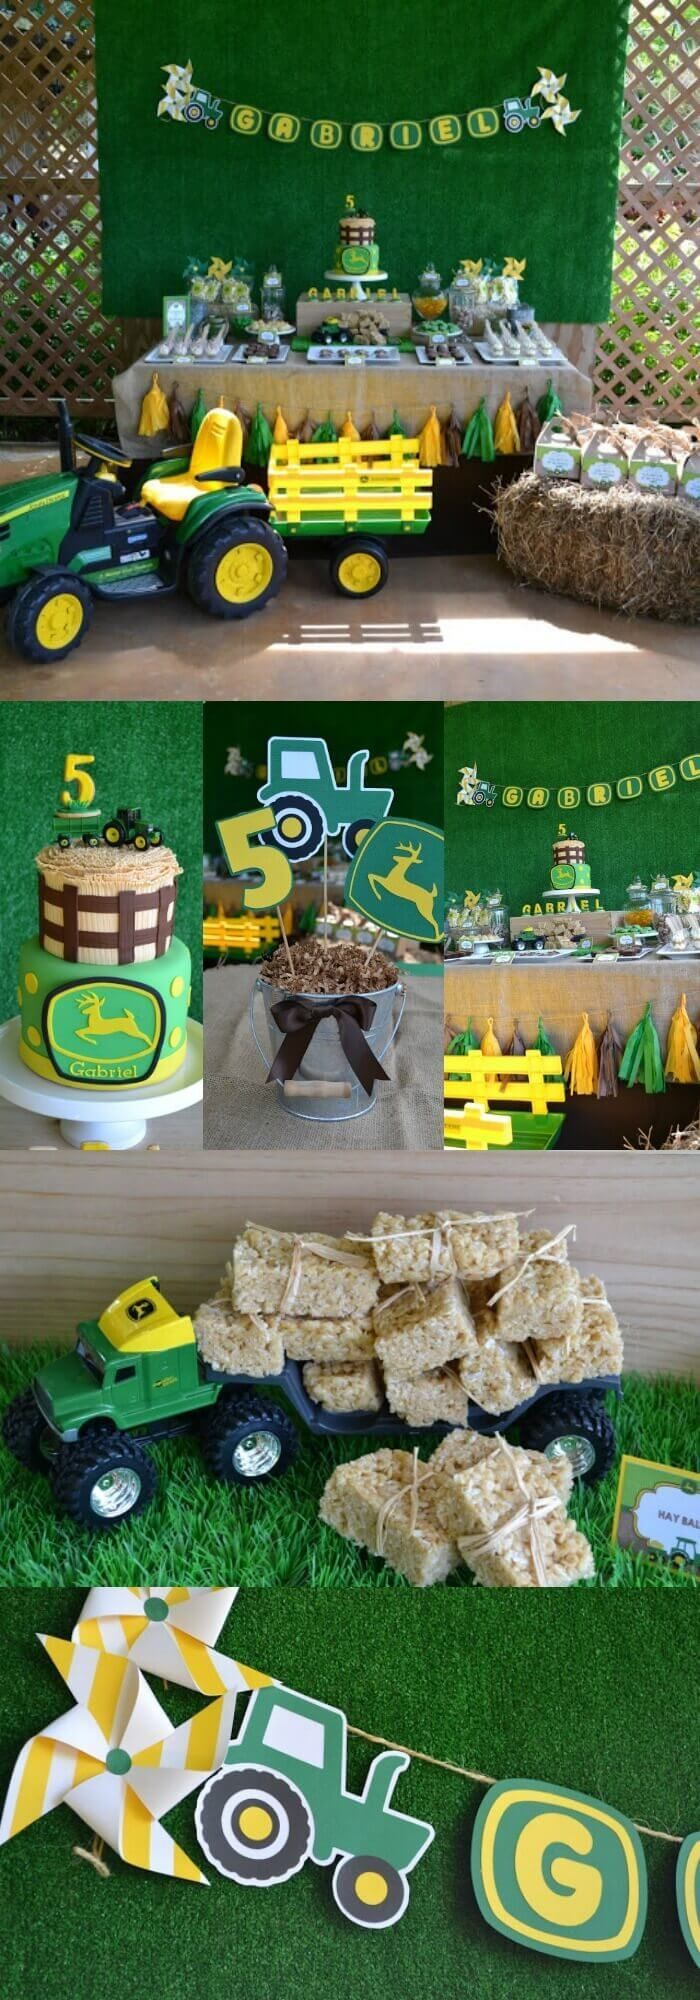 john deere birthday party ideas | boy's party ideas in 2018